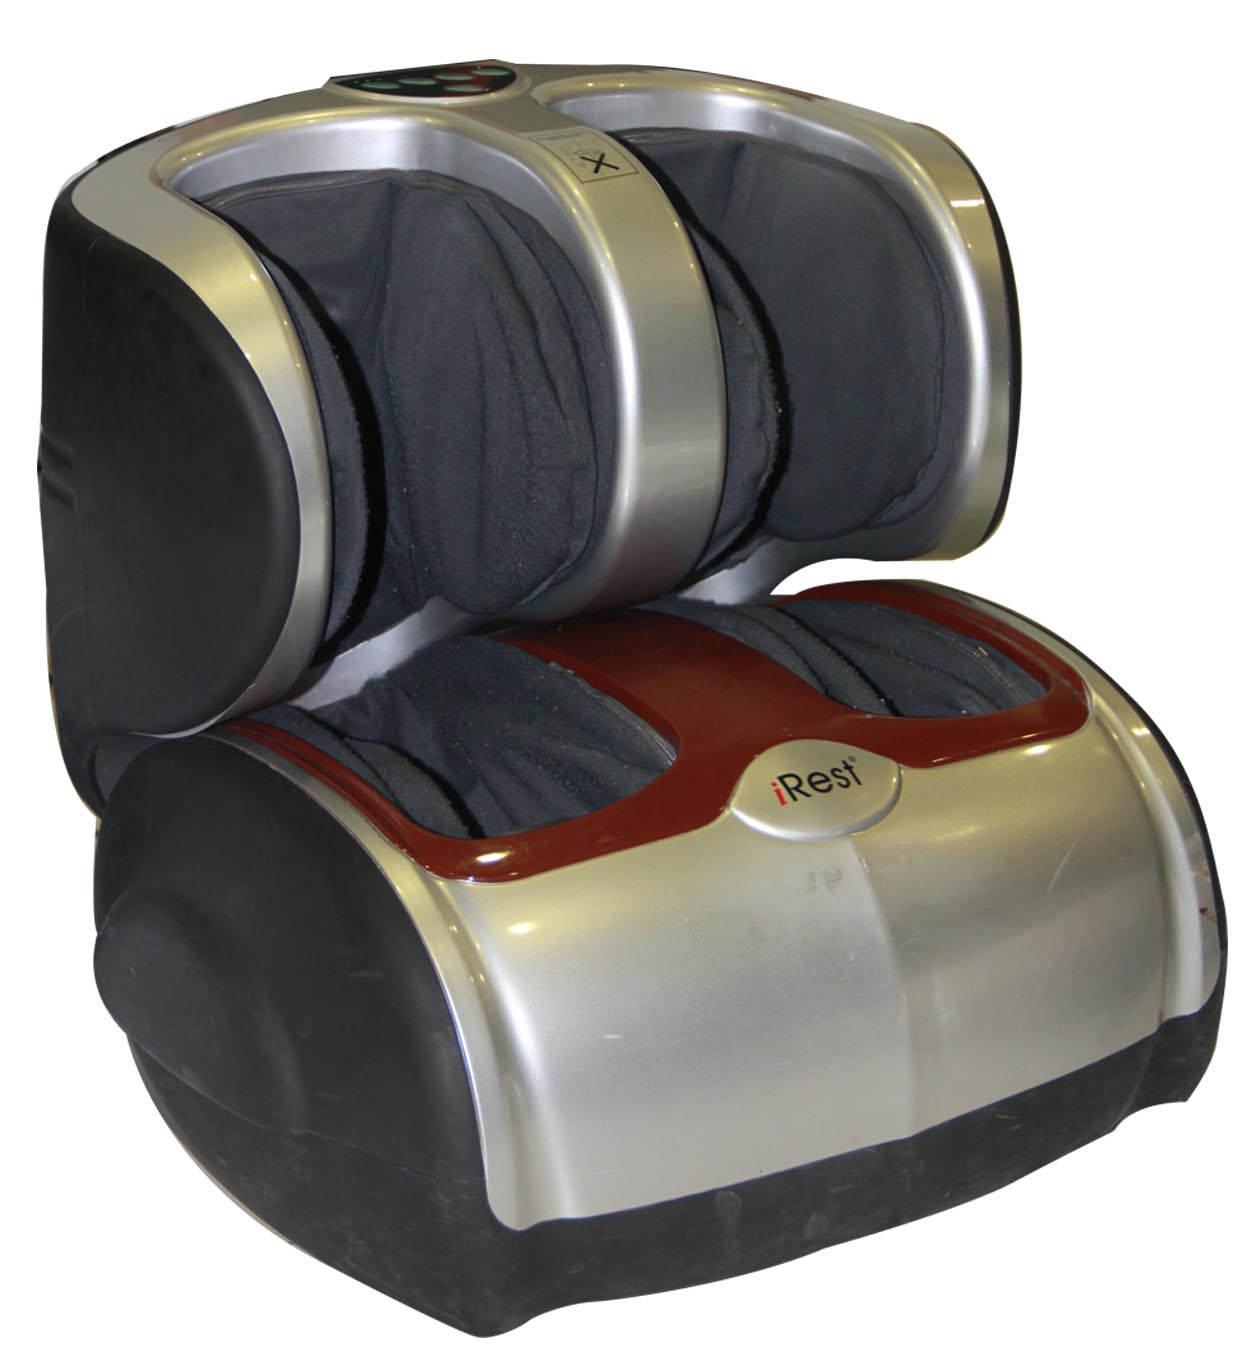 irest massage chair director covers bunnings  rest time electronics